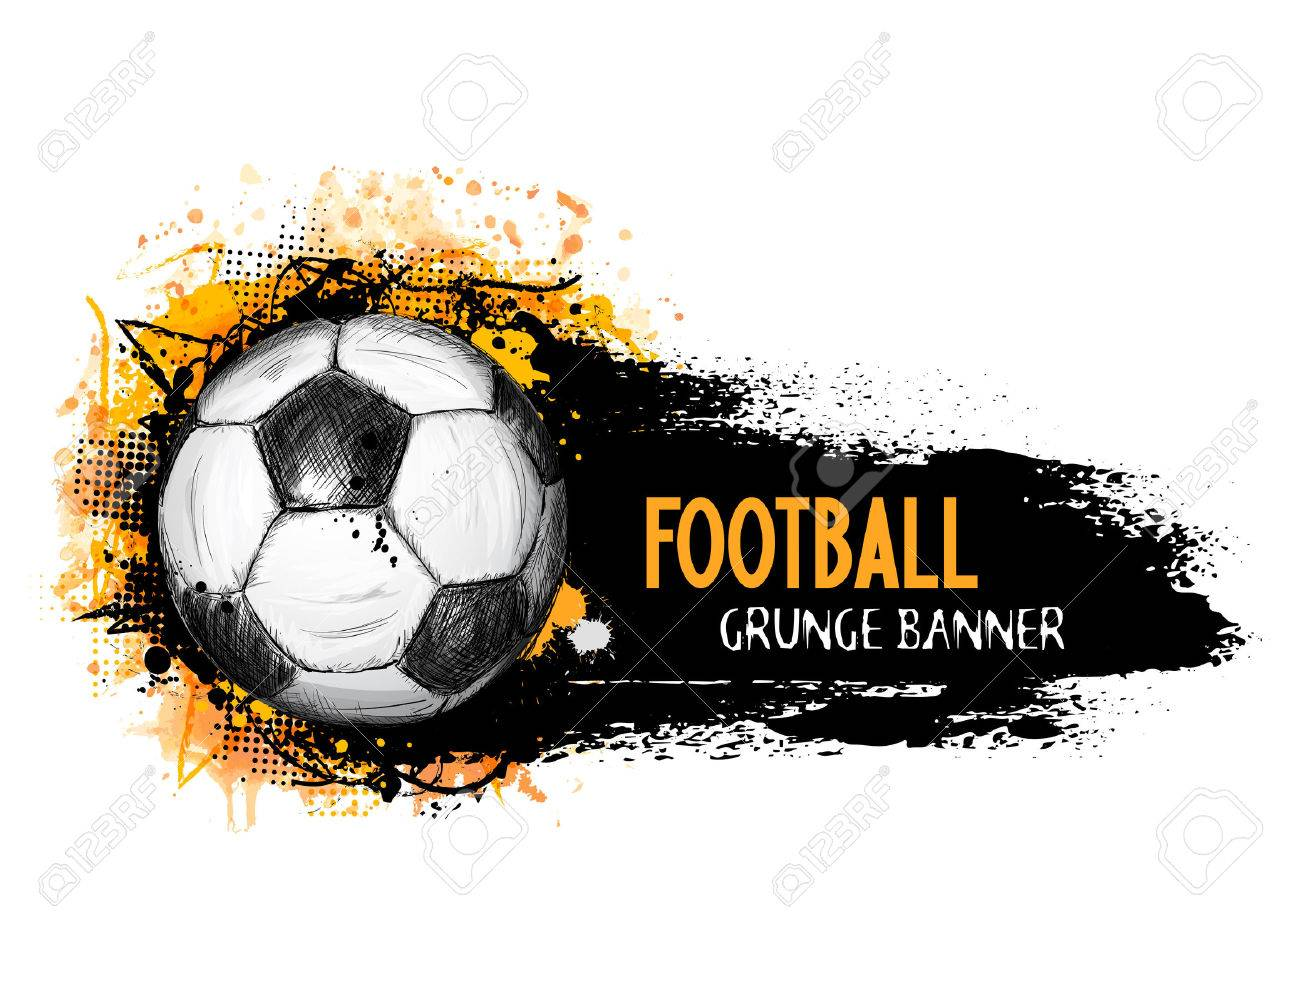 Hand drawn vector grunge banner with soccer ball, stylish composition and orange watercolor background, in doodle style - 54122402